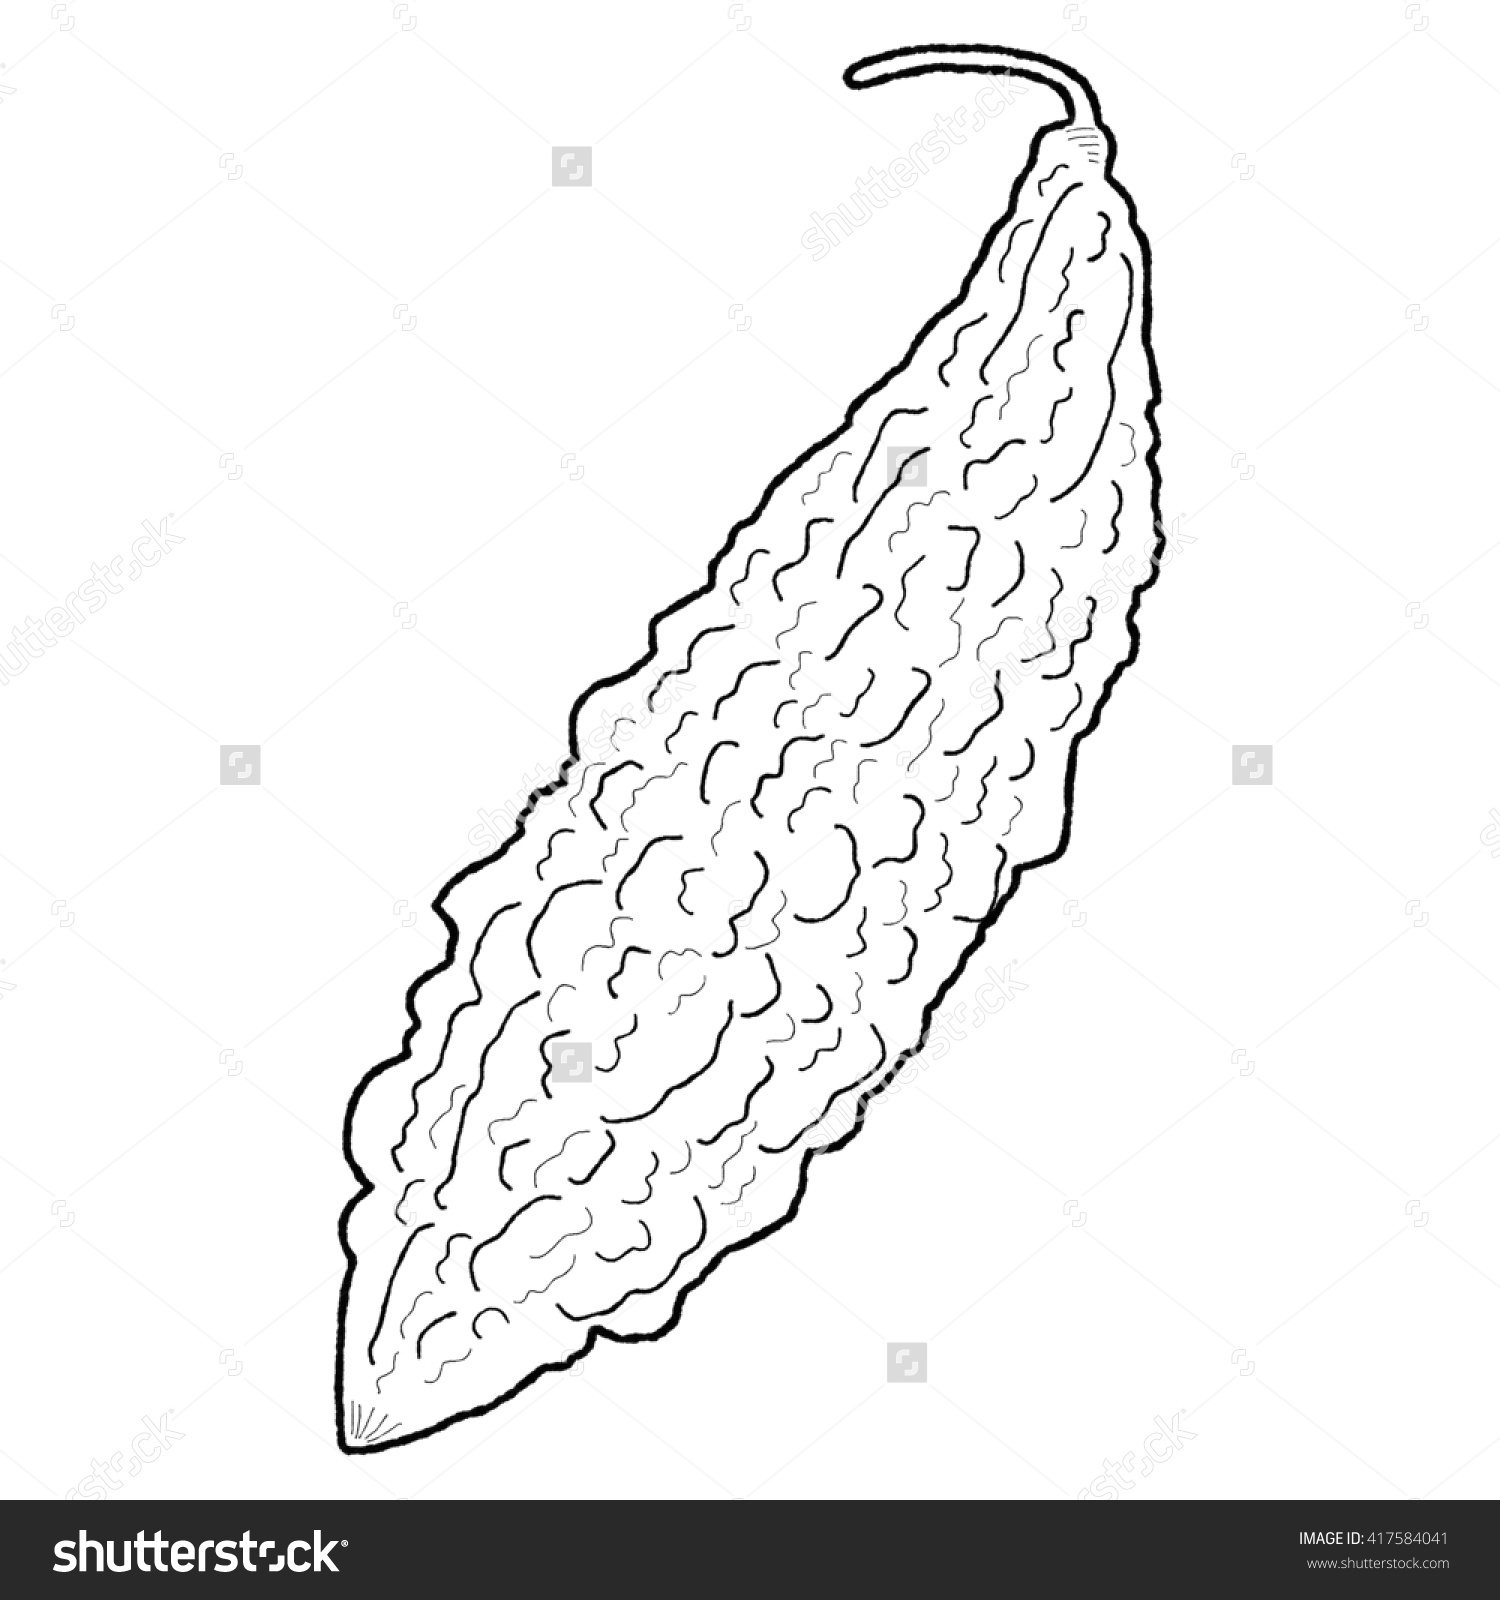 Ampalaya Clipart Black And White 10 Clipart Station